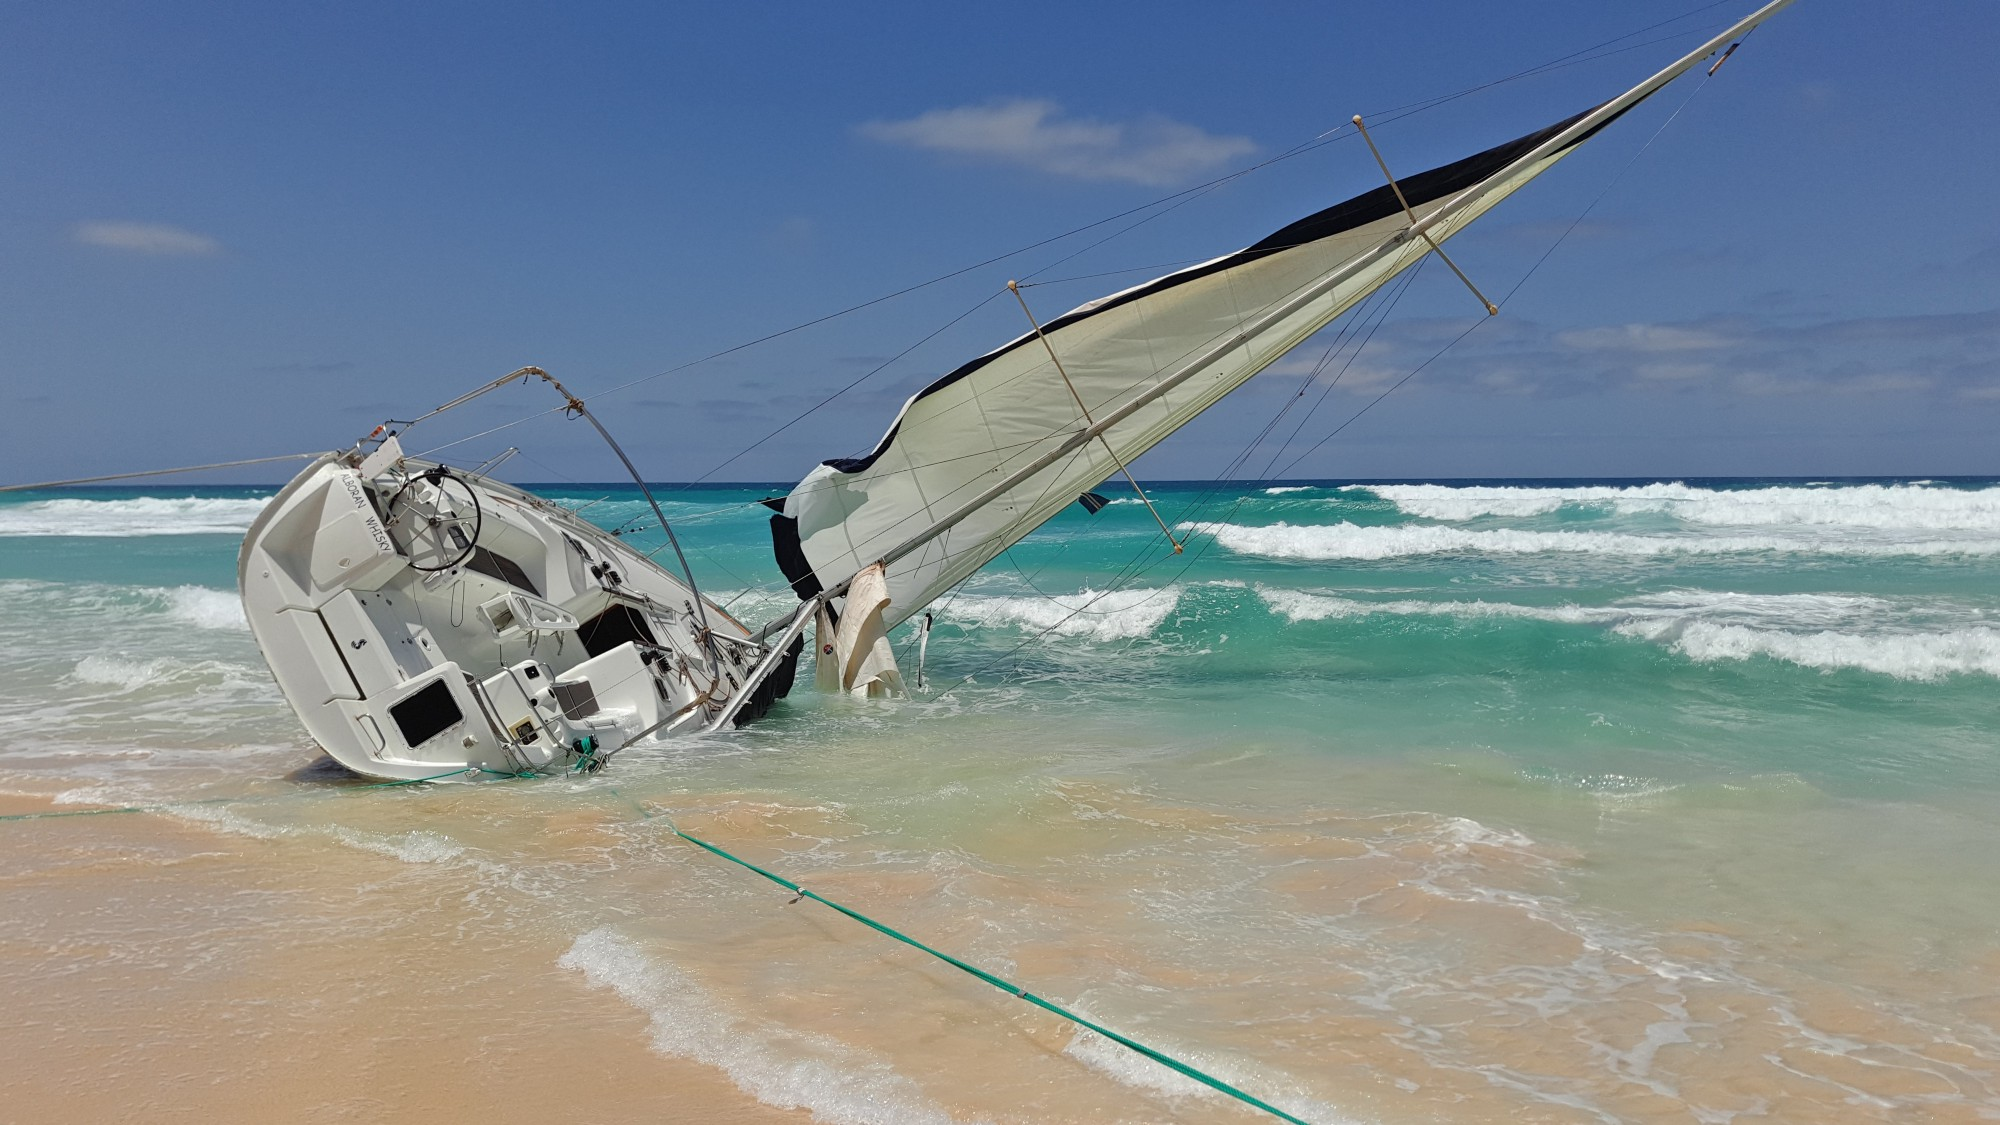 Image of sailboat stuck on sand